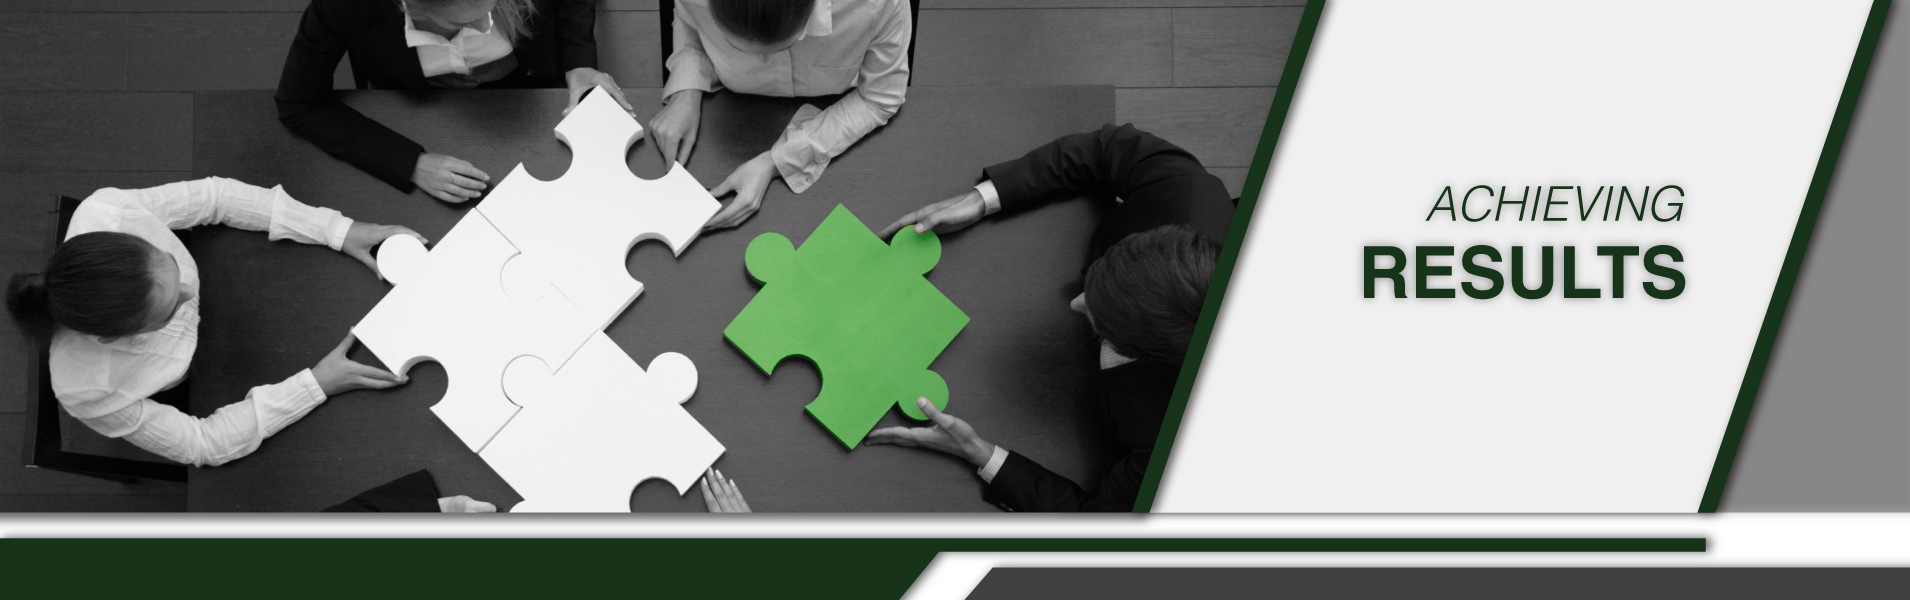 Five people sitting around a table putting together four puzzle pieces, one of which is green. Text to the right reads Achieving Results.